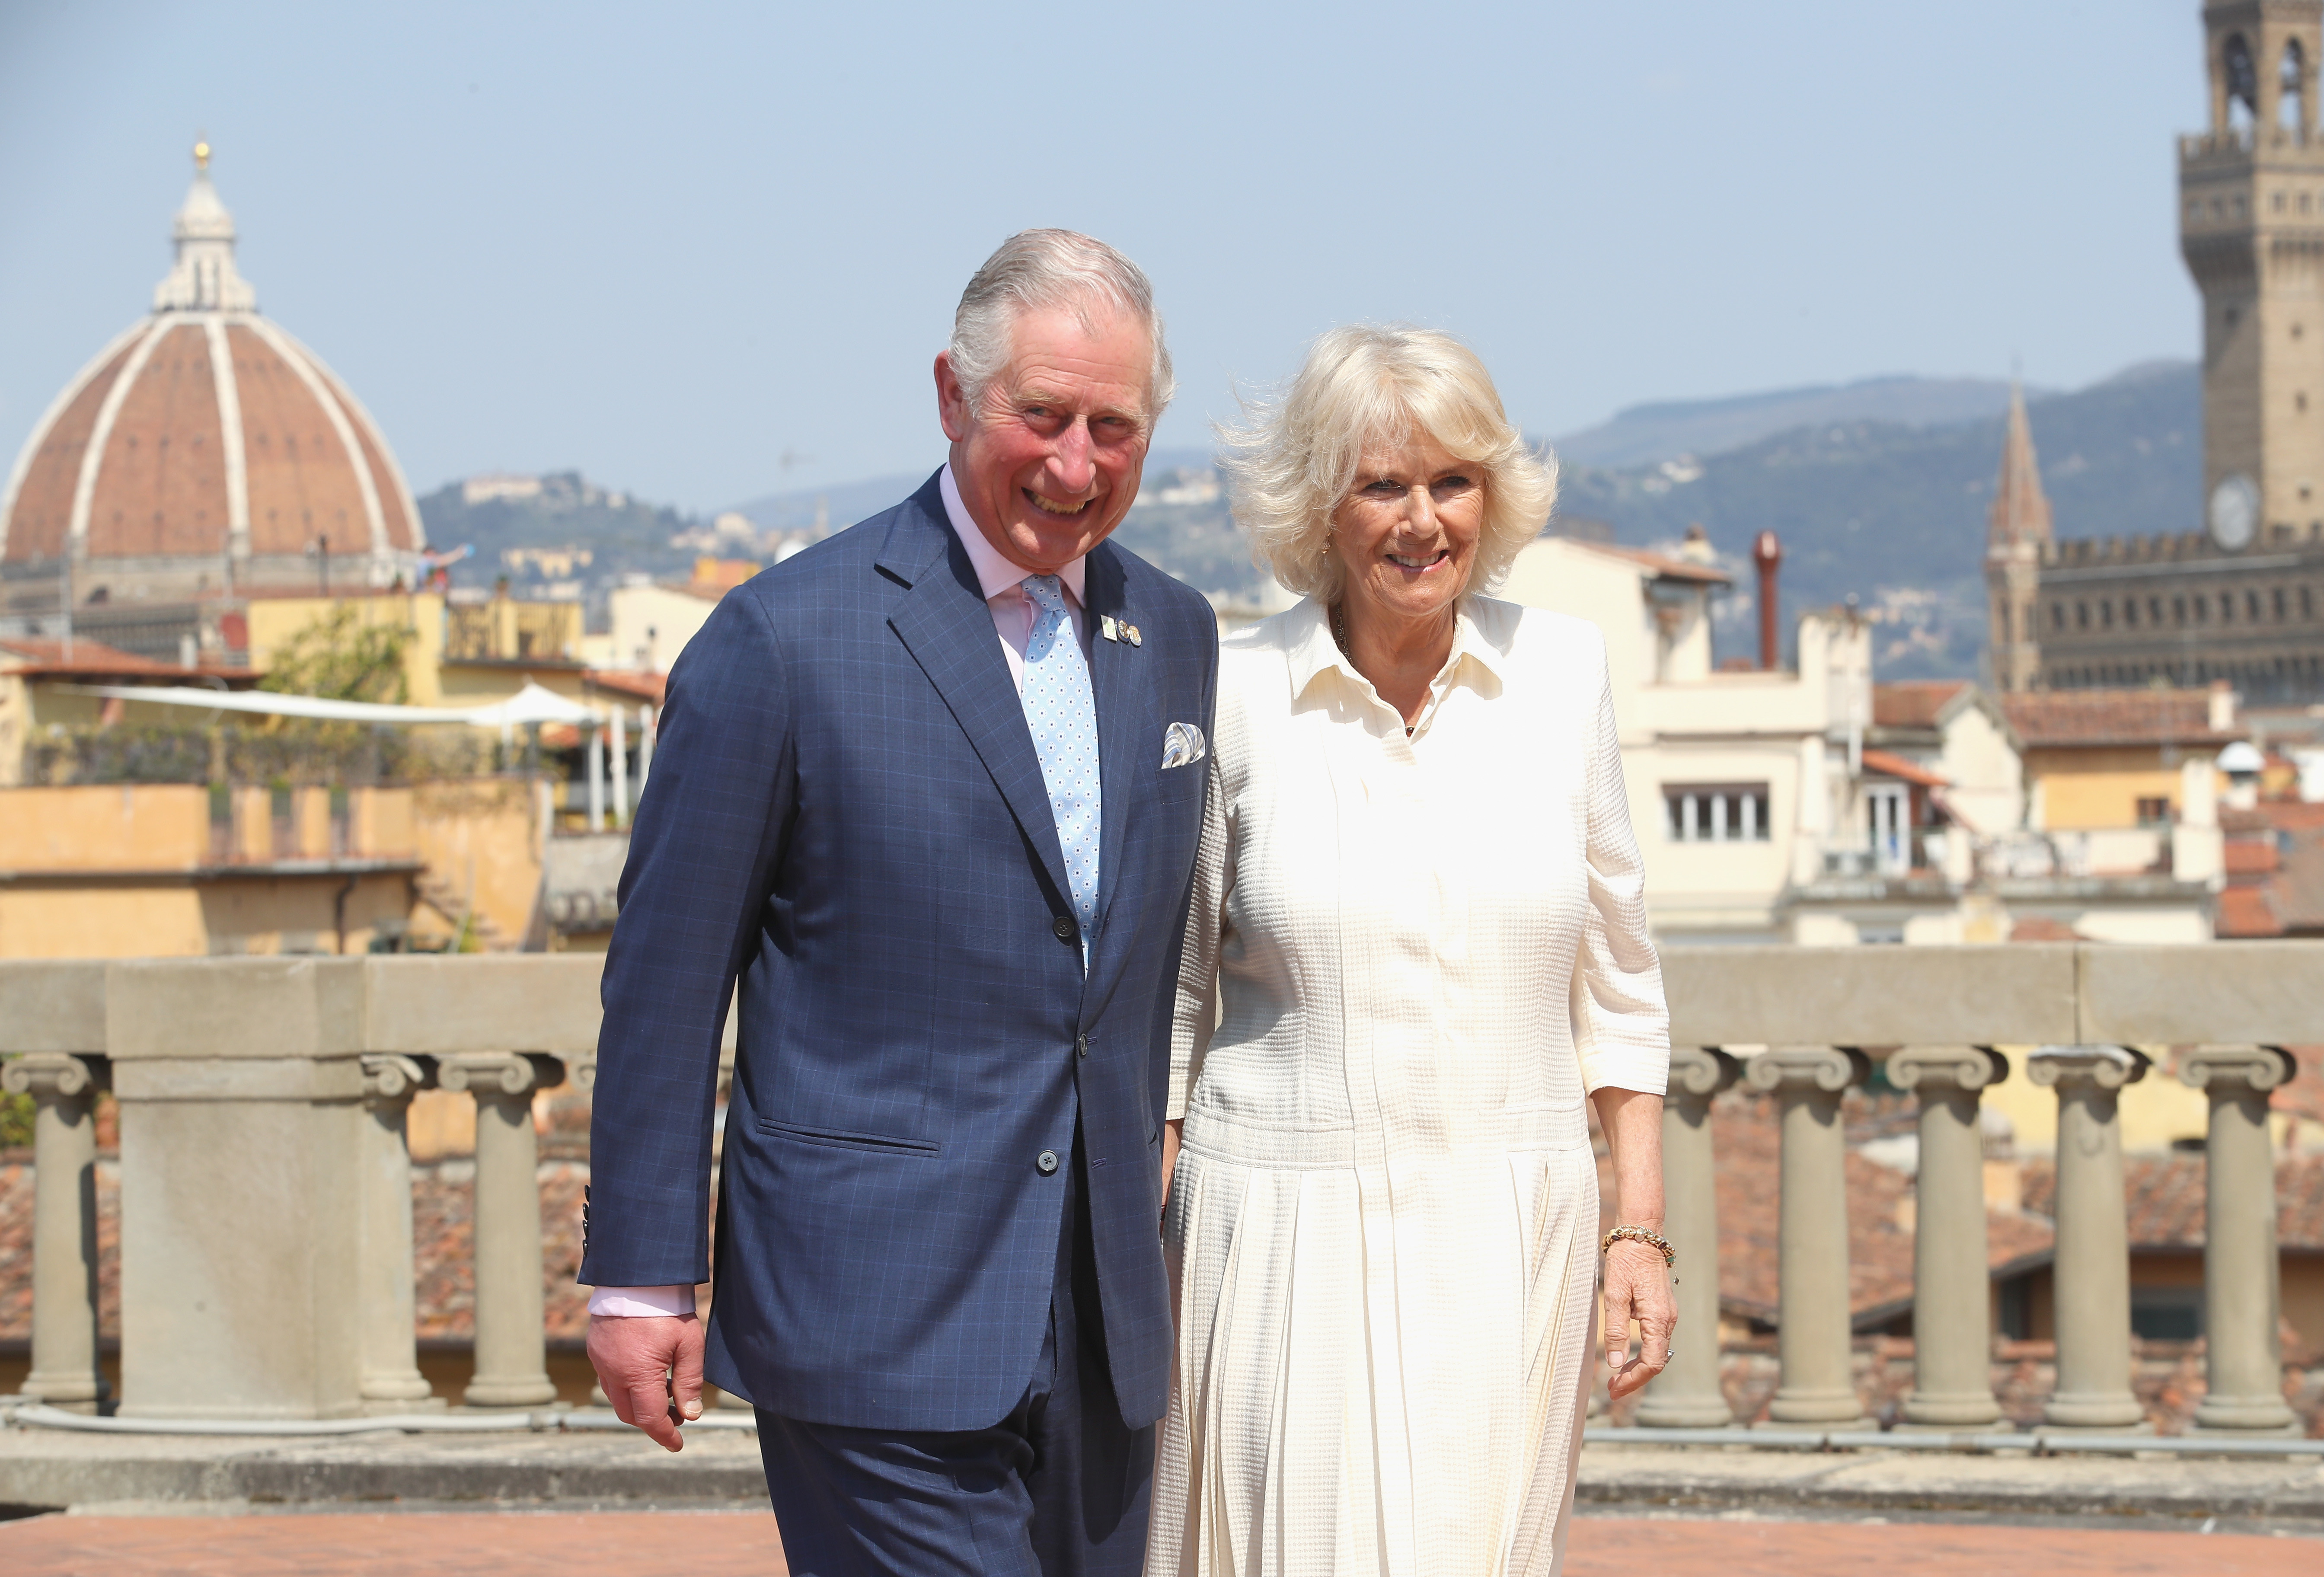 Prince Charles, Prince of Wales and Camilla, Duchess of Cornwall attend an event for the Italian Wool Industry and the Prince of Wales's Campaign for Wool at Palazzo Pitti, on April 3, 2017 in Florence, Italy. Their Royal Highnesses will be introduced to representatives from Woolmark and the Campaign for Wool, view product demonstrations, learn about innovative wool techniques and be given a tour of the palace's Art Gallery. The Prince of Wales launched the Campaign for Wool in January 2010 as an initiative to expand the market for British and Commonwealth wool and promote awareness of its environmental benefits. (